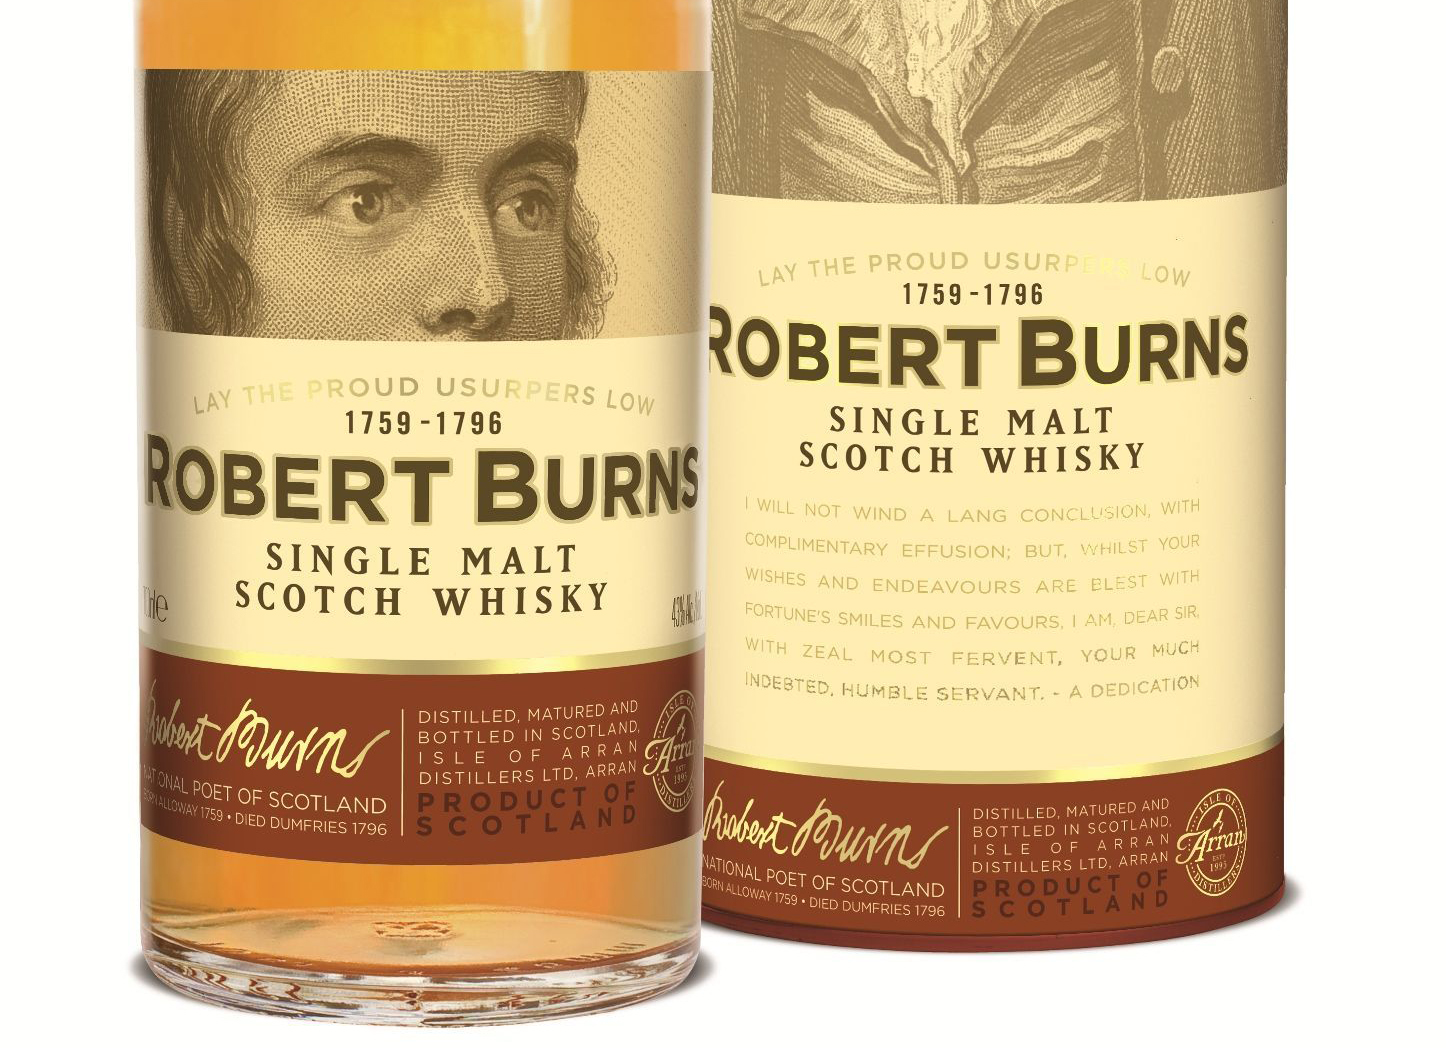 8 Of The Best Scottish Drinks To Toast The Bard With This Burns Night photo